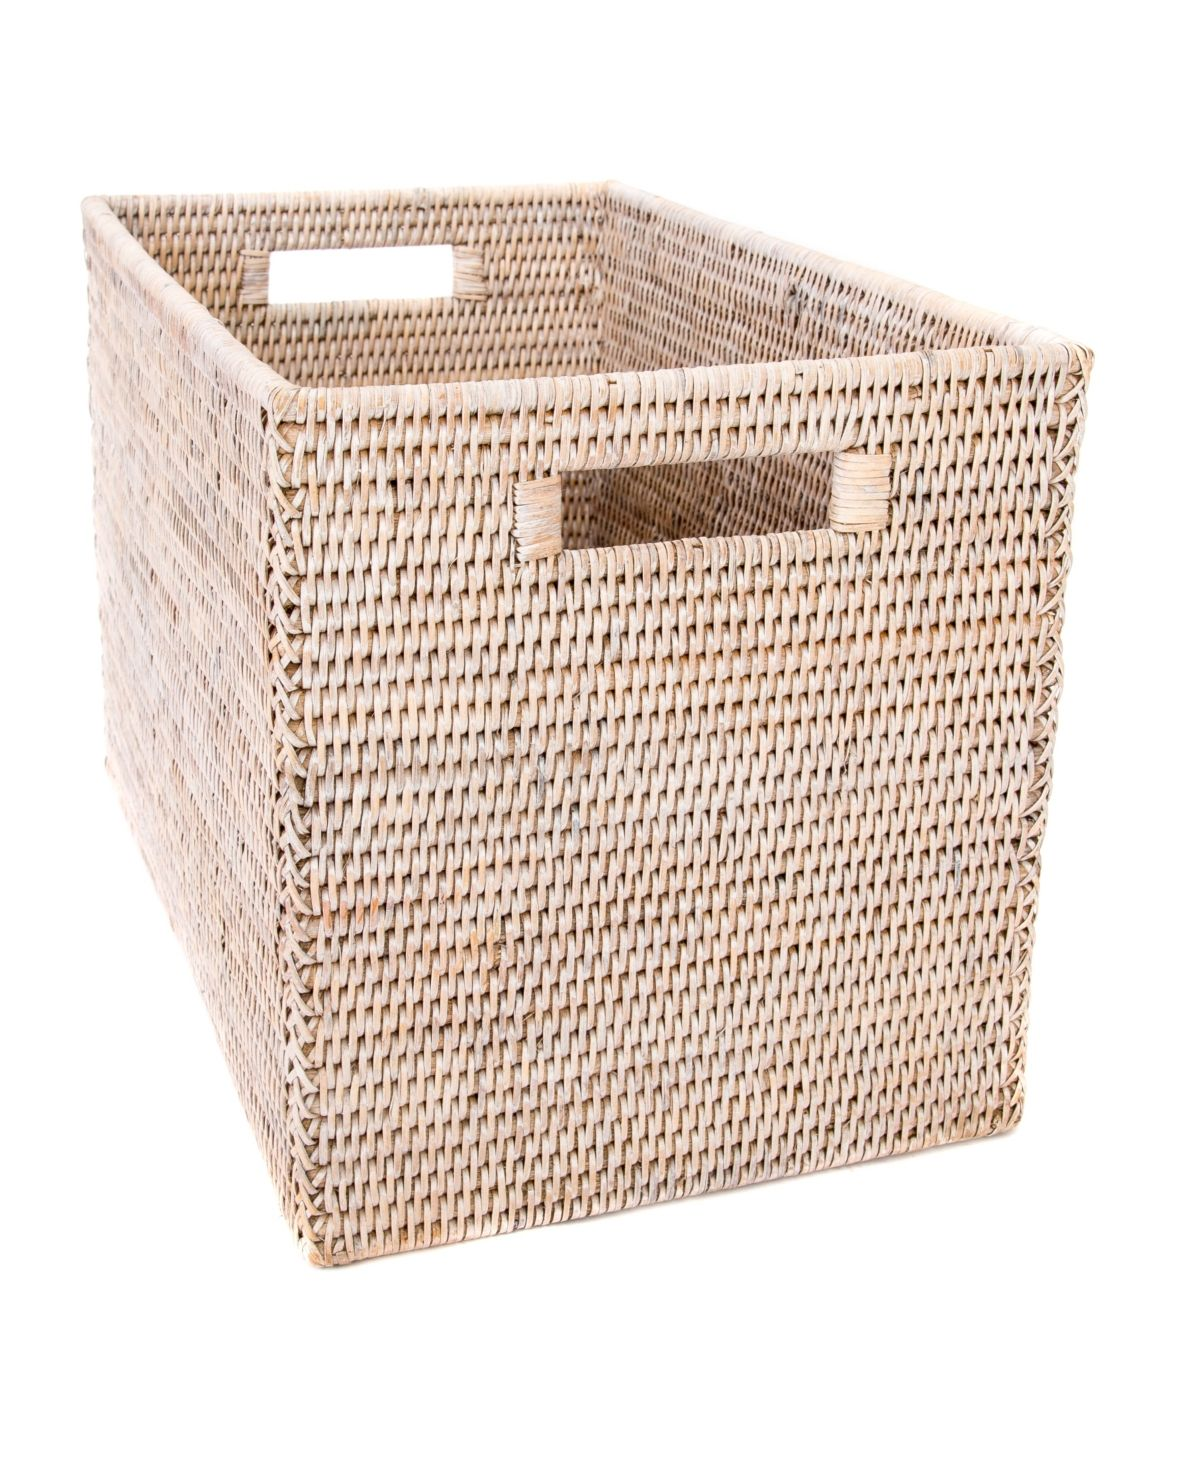 Artifacts Trading Company Rattan Storage Box Legal